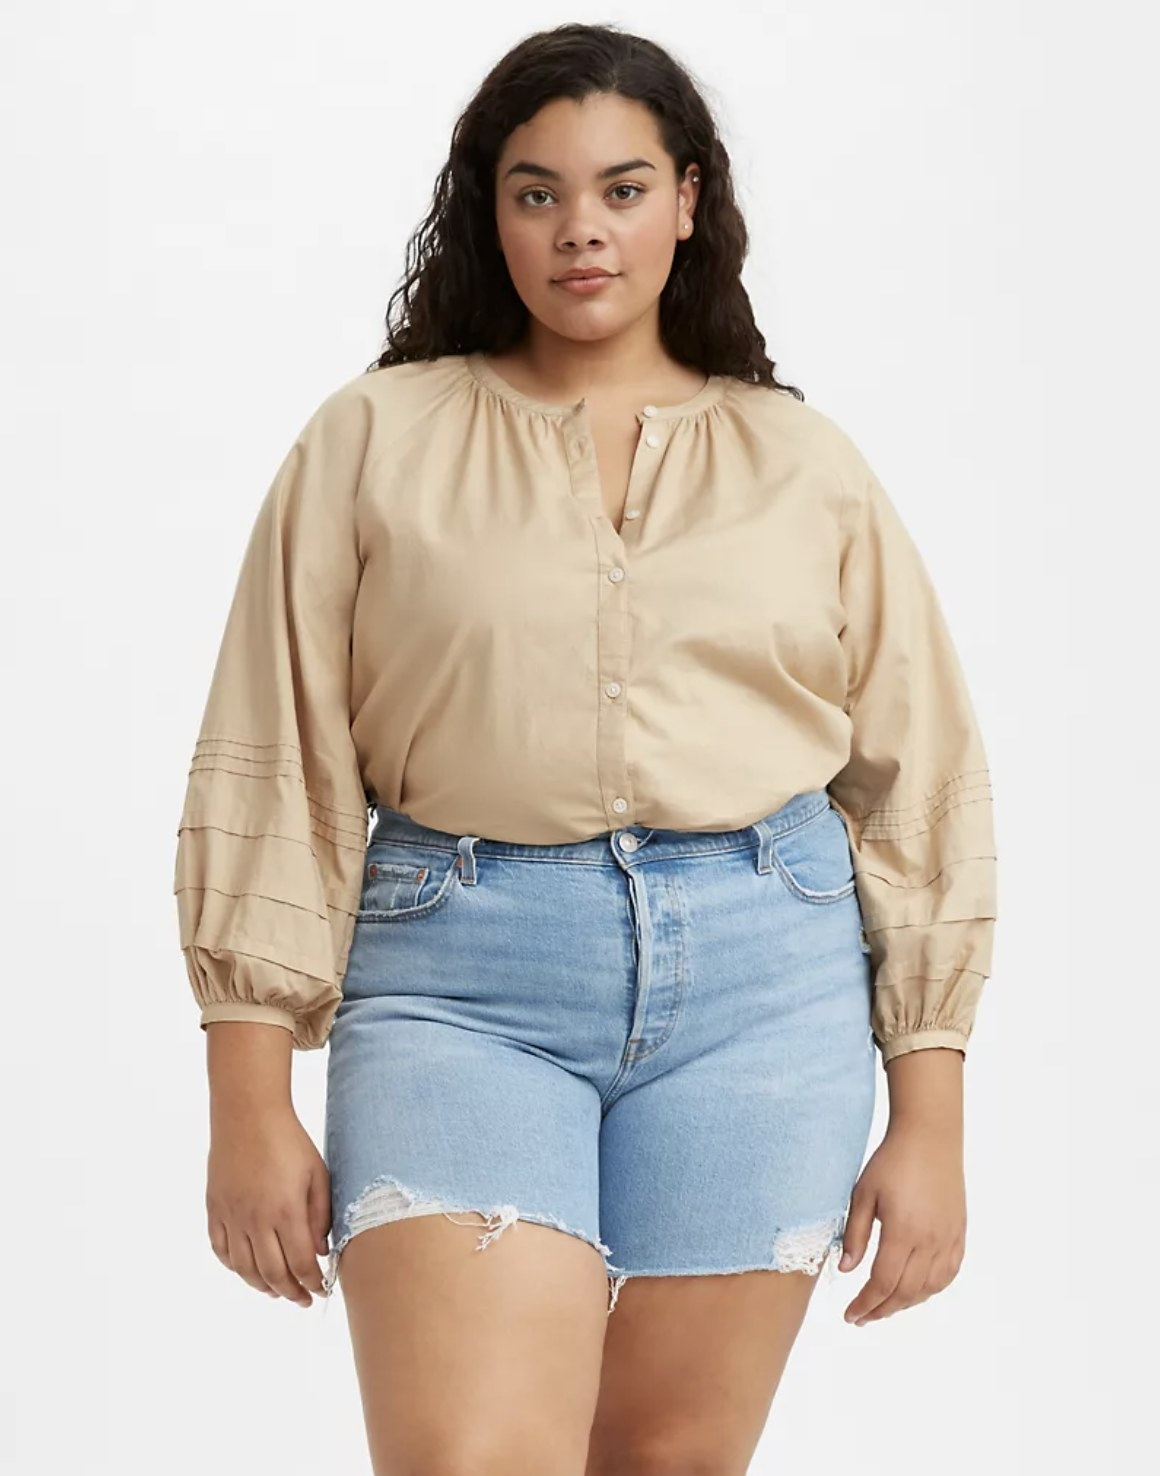 Model is wearing a beige Genevieve top and denim shorts